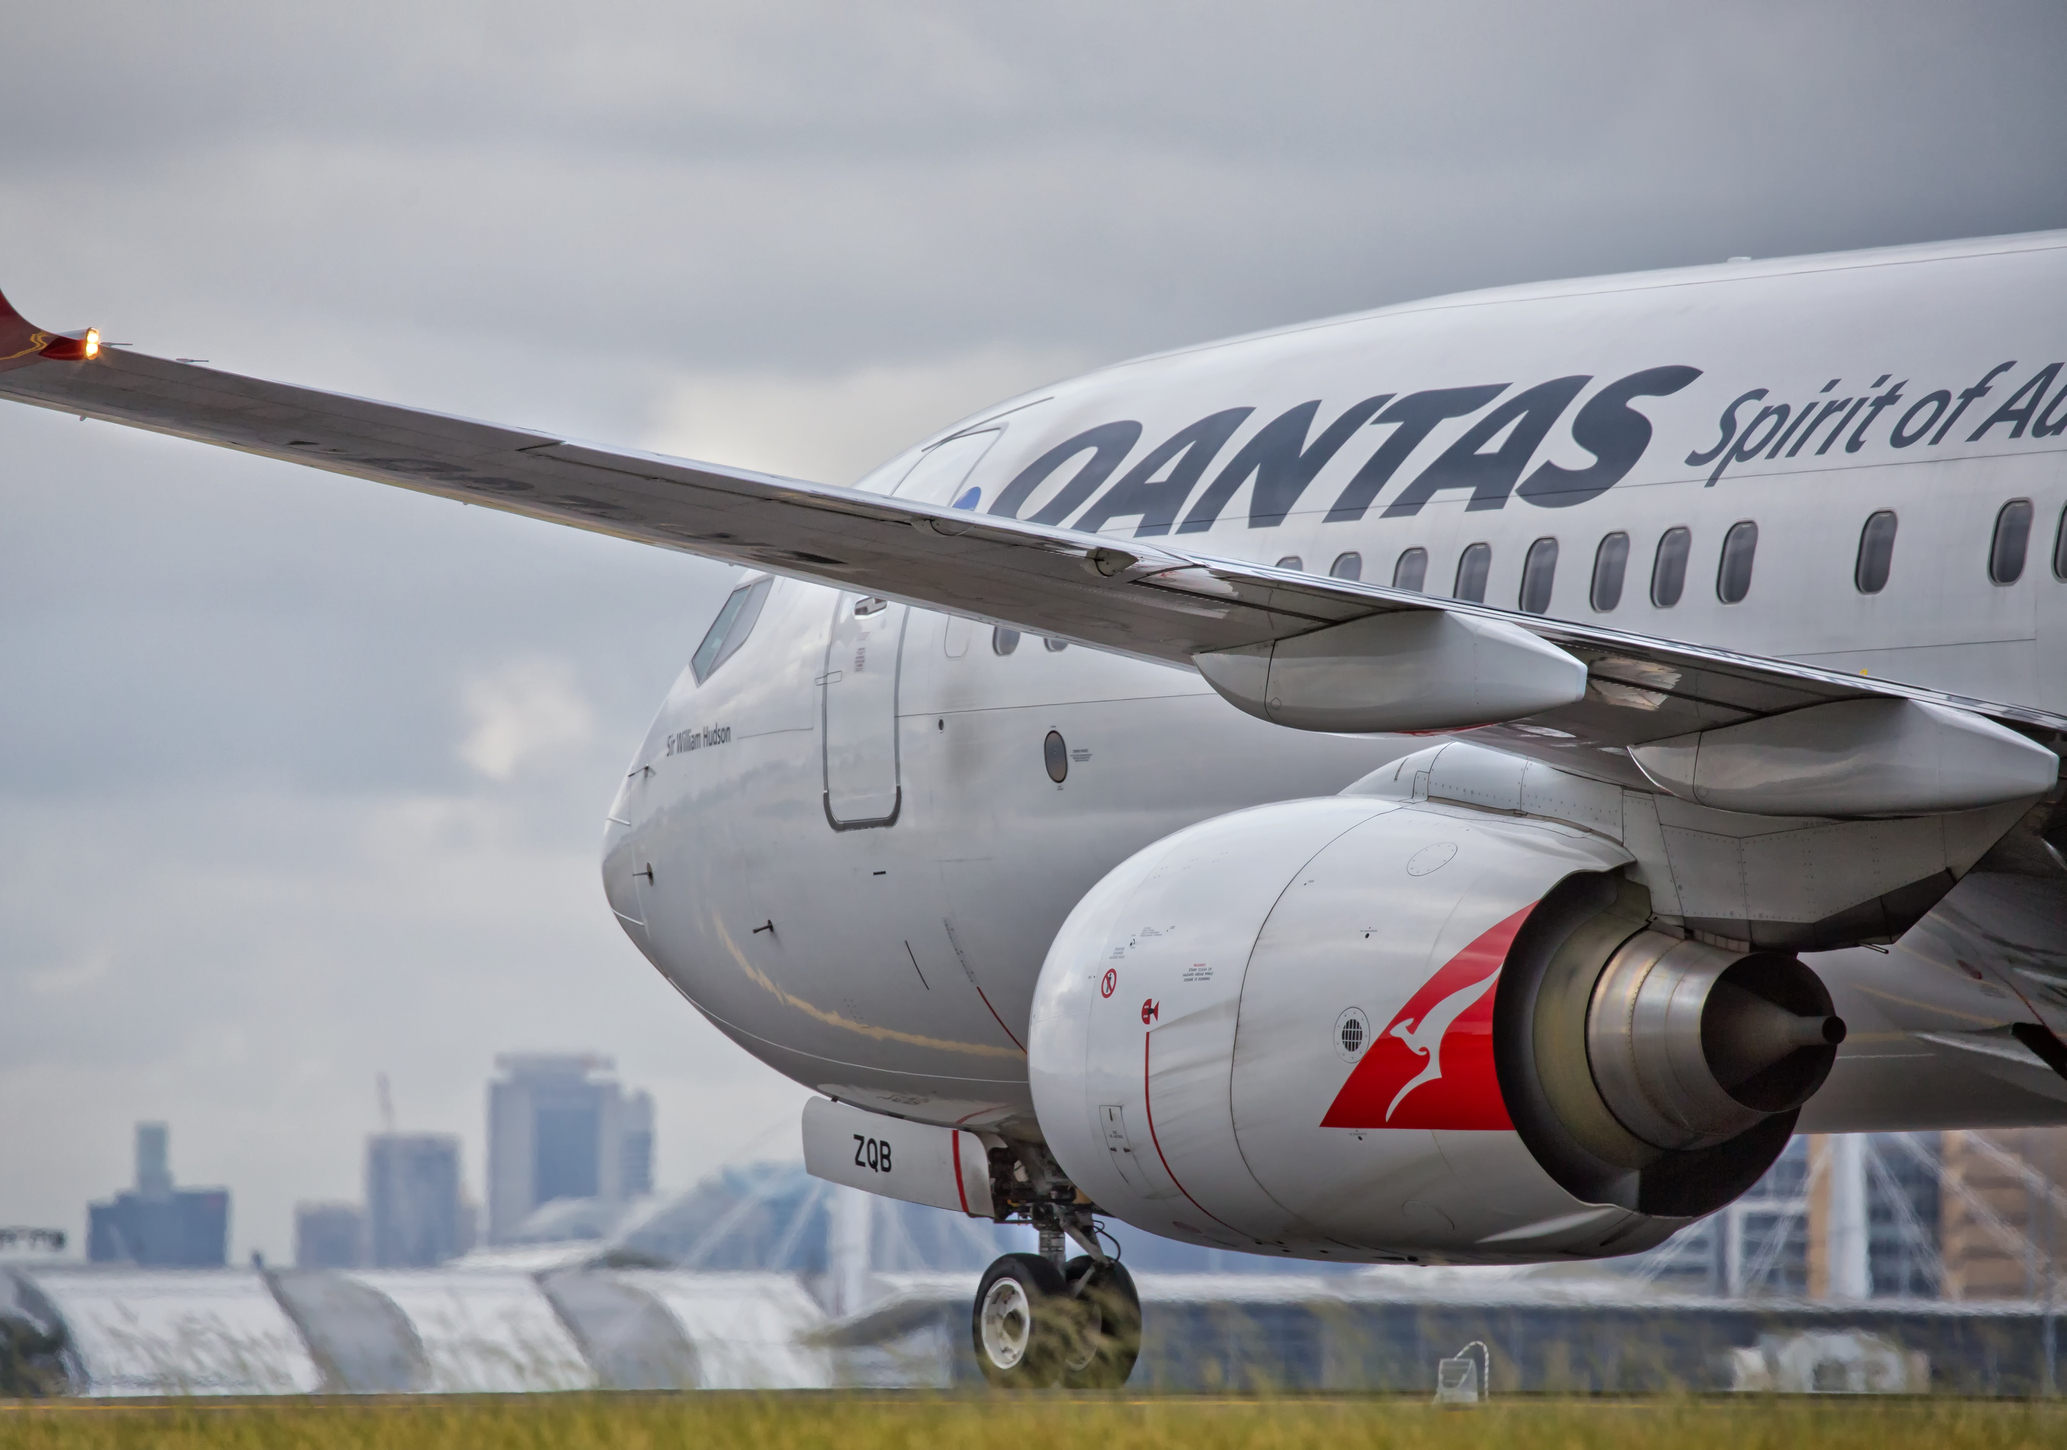 Qantas passengers smell smoke on Perth flight